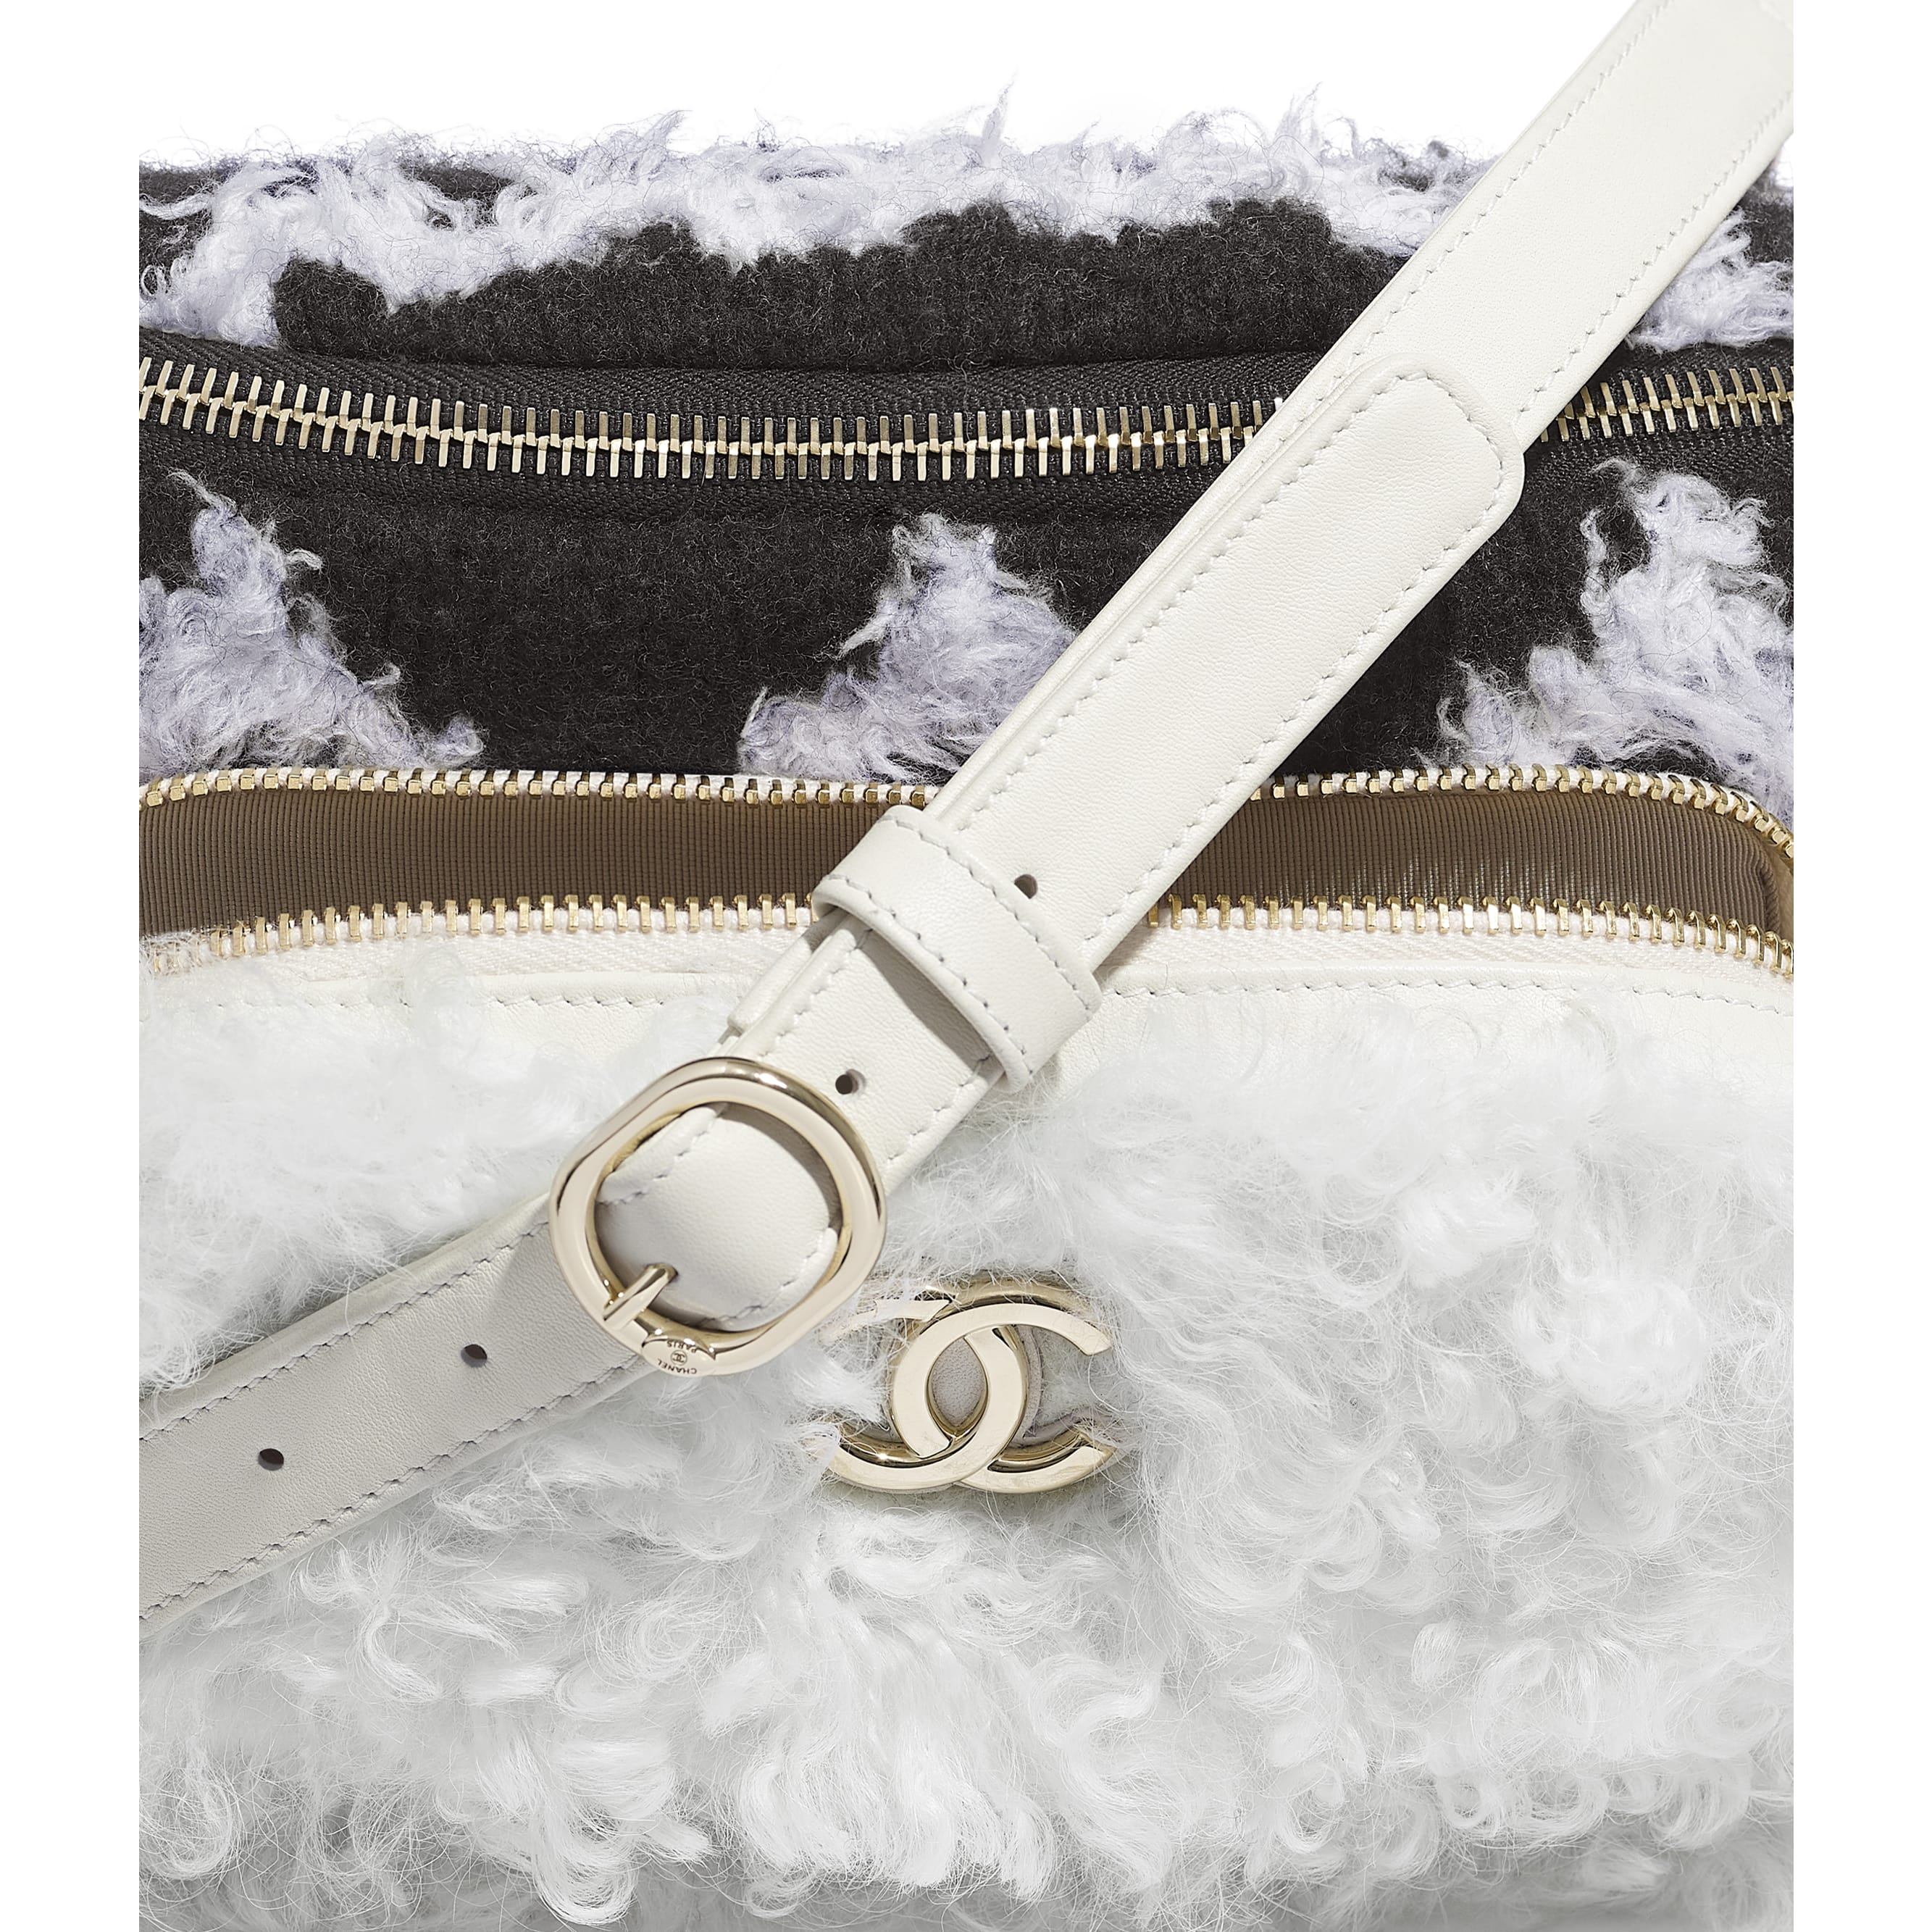 Waist Bag - White & Black - Wool, Shearling Sheepskin & Gold-Tone Metal - Extra view - see standard sized version